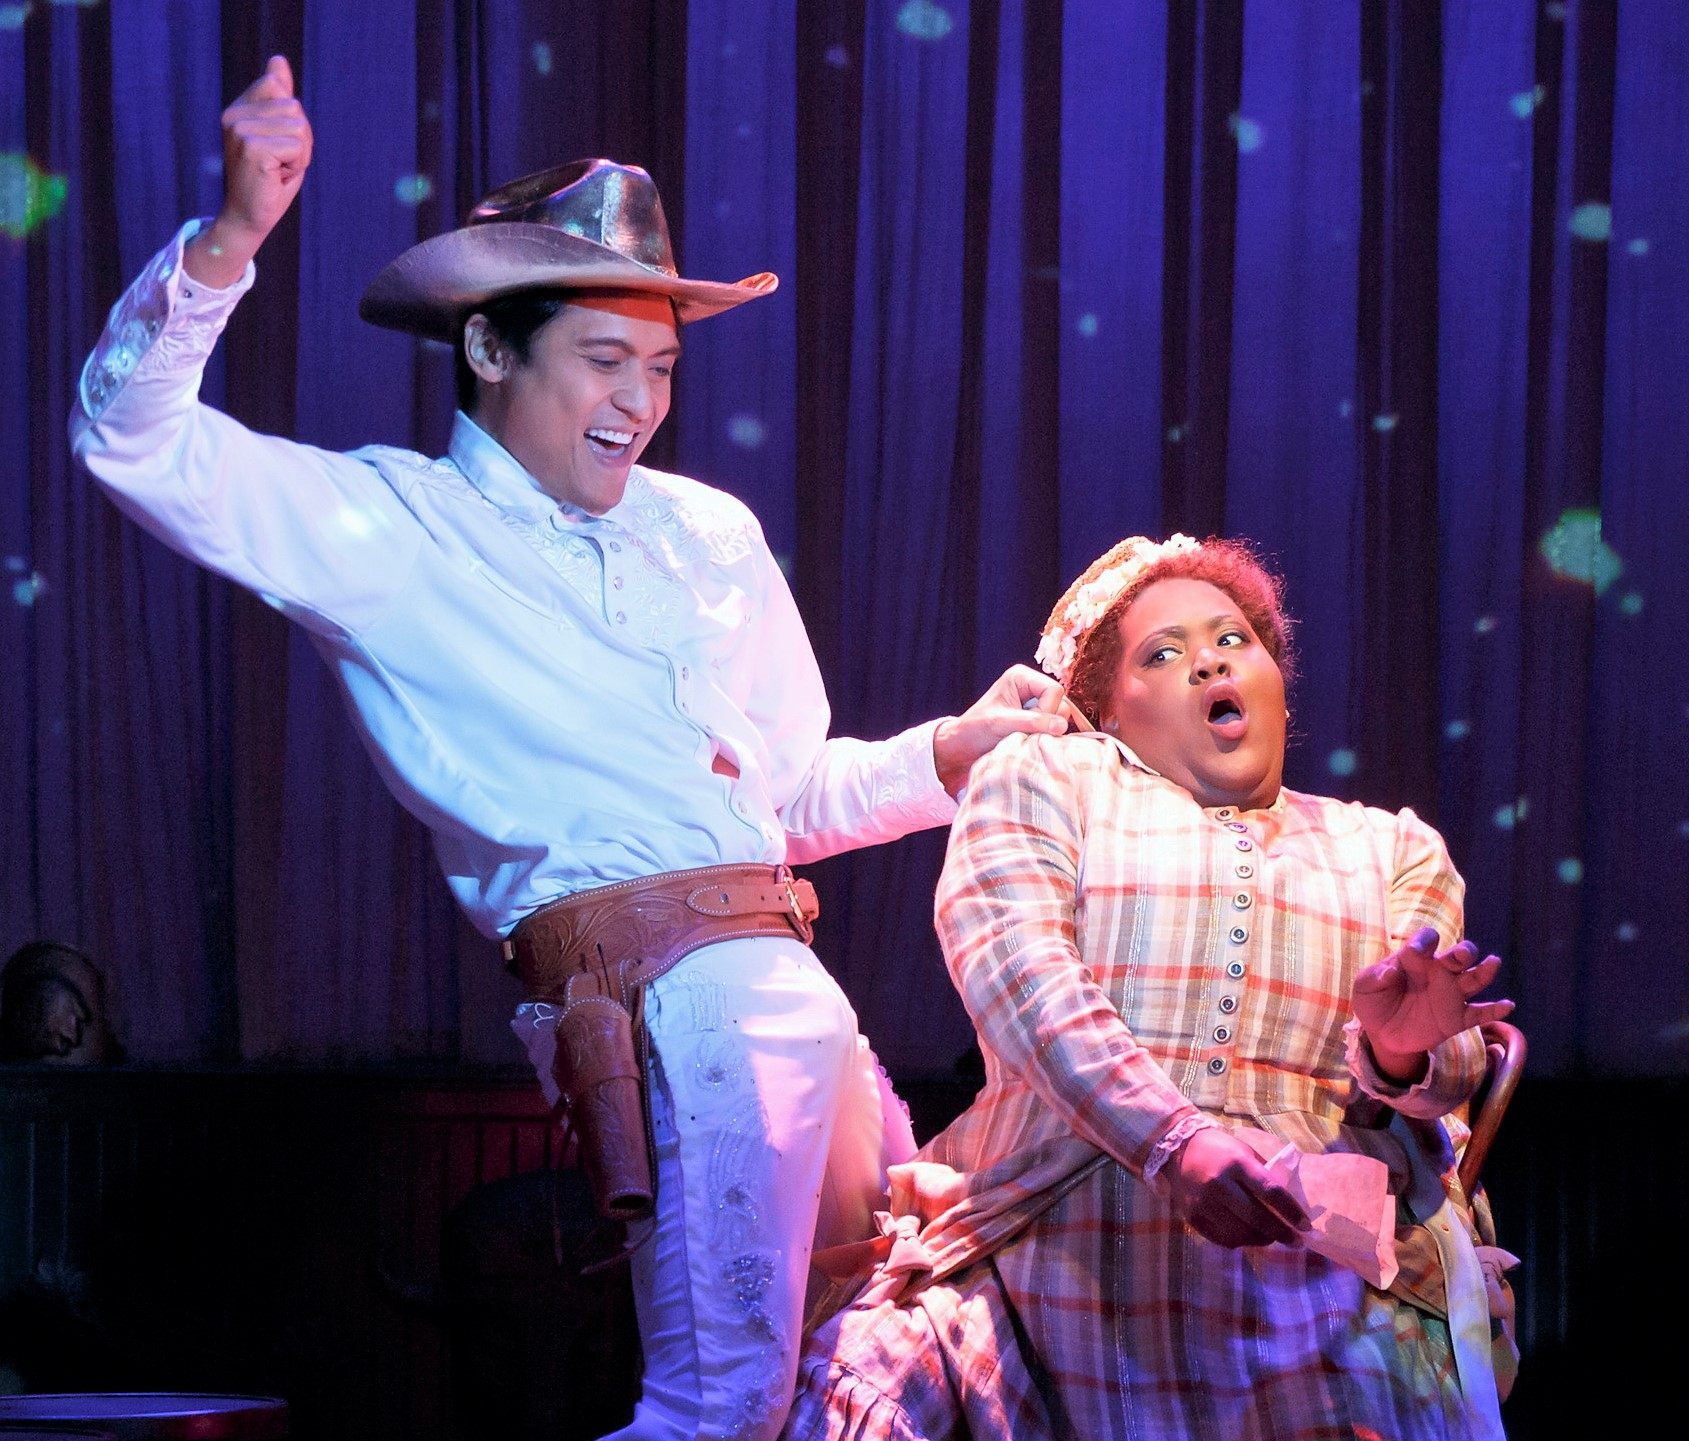 Kelley with Paolo Montalban as Tommie Haw. Photographs by Joan Marcus.